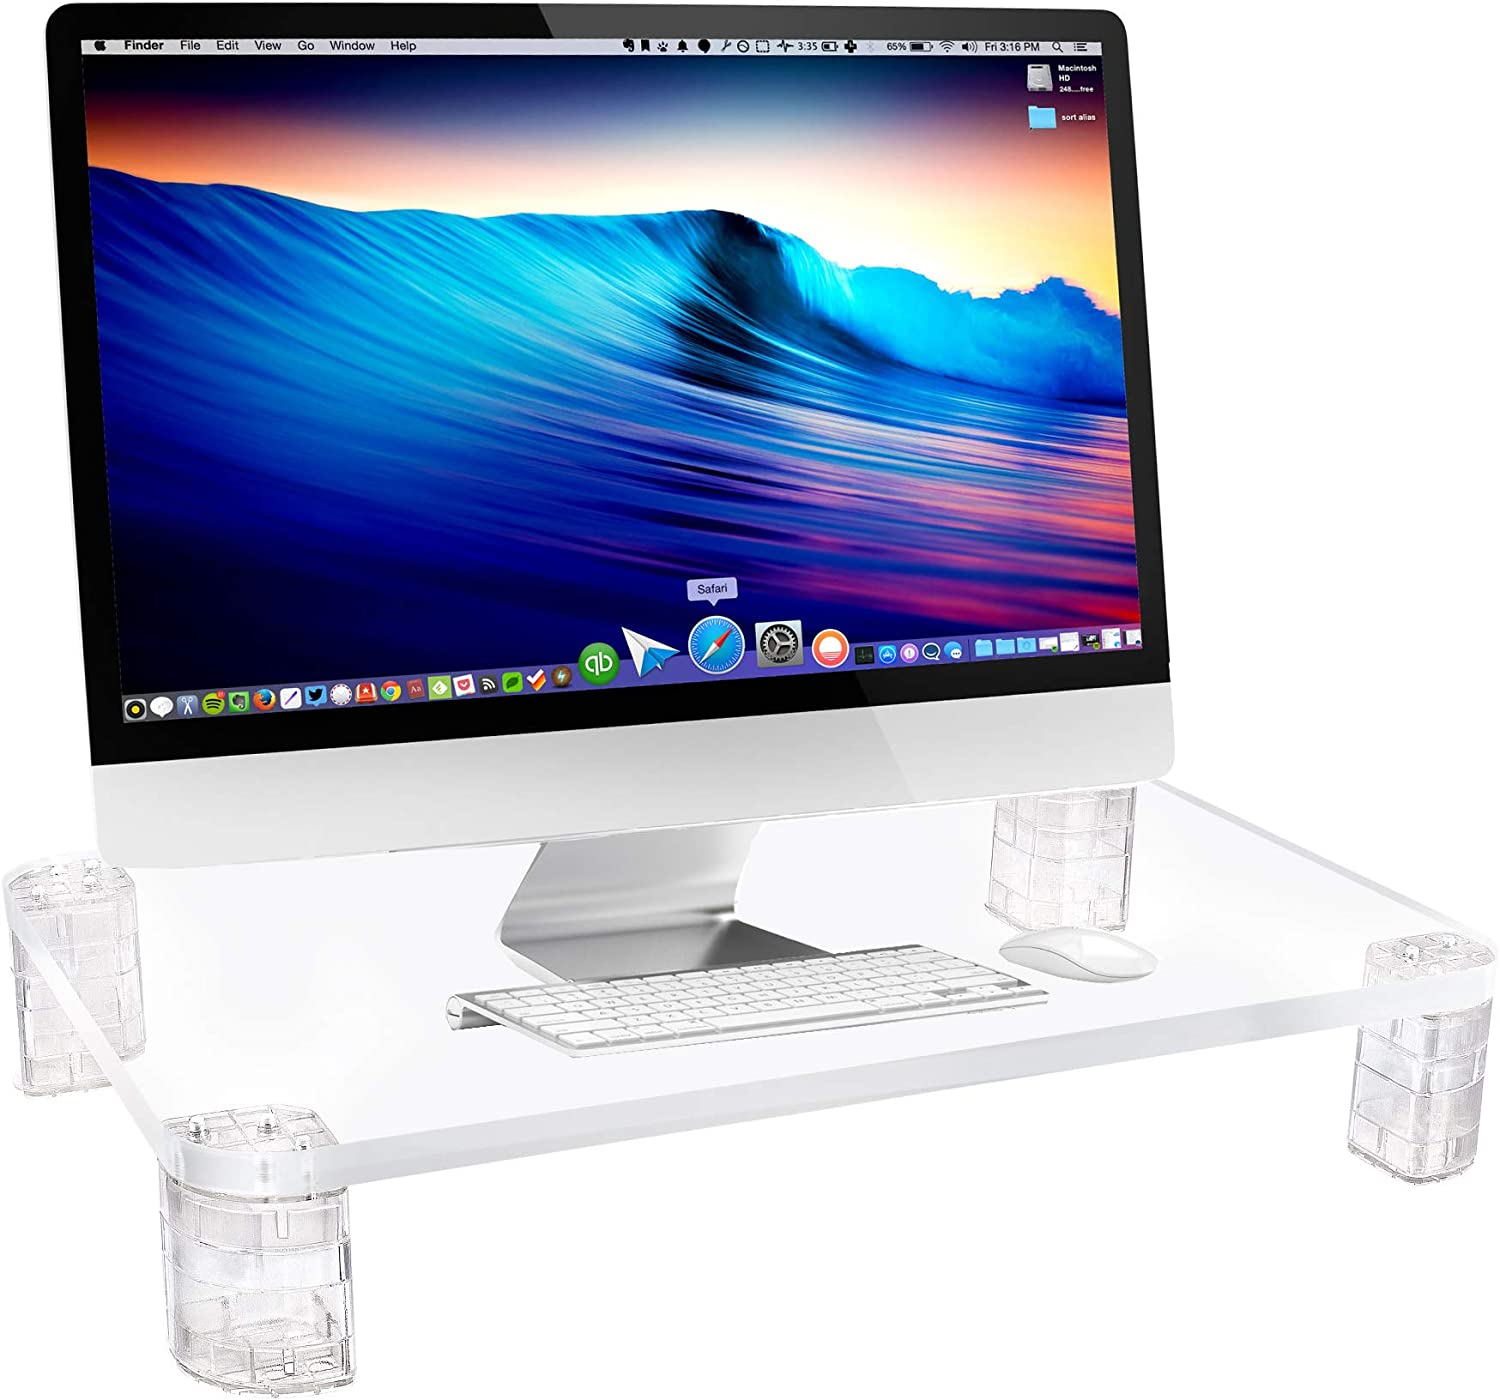 """Acrylic Monitor Stand Riser - Computer Desk Shelf Organizer for Laptop,  iMac, Printers, Keyboard & Screens Up to 42"""" Inches  Clear"""